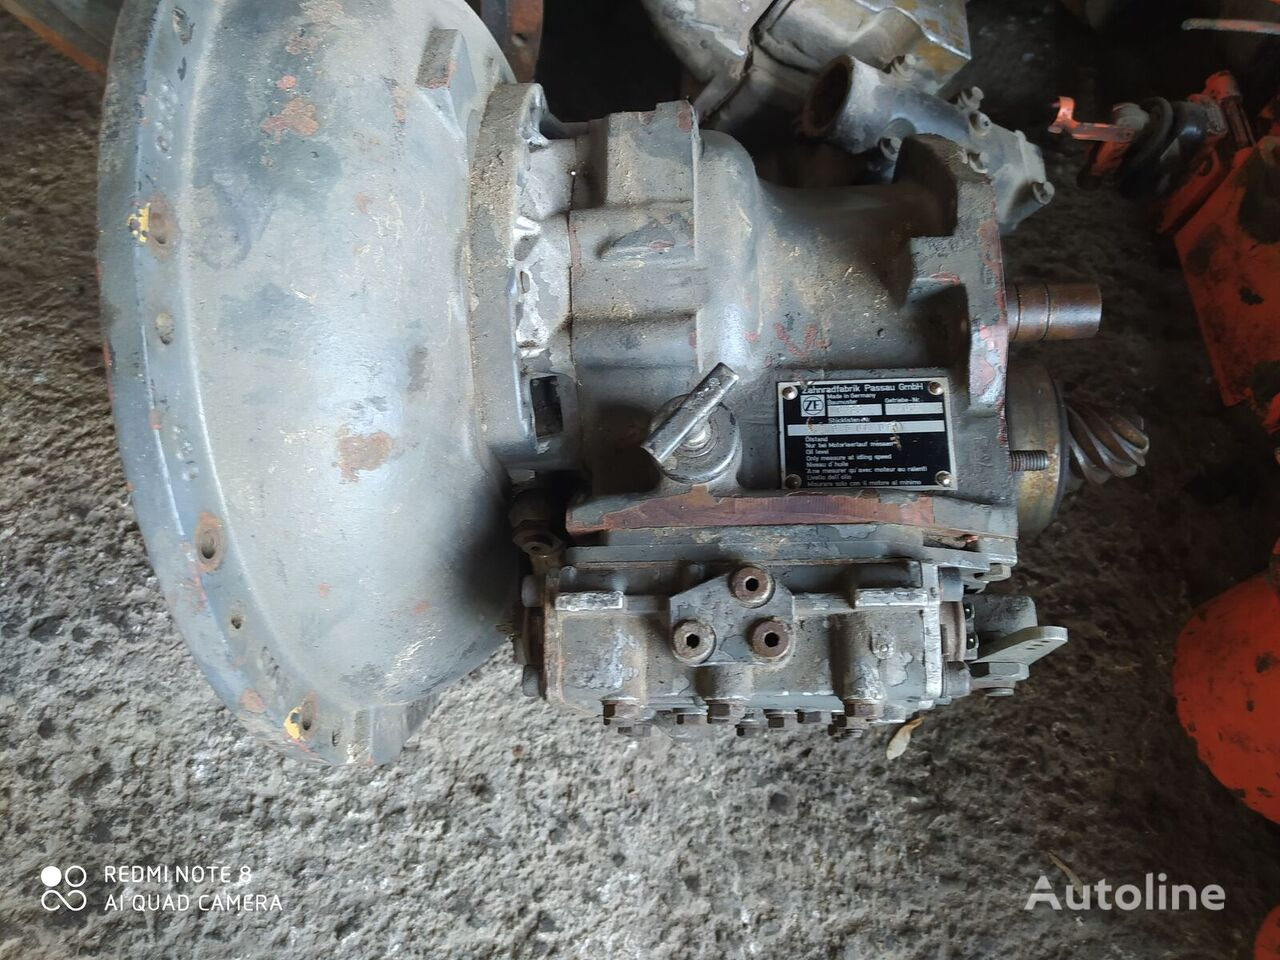 ZF WG-83 gearbox for forklift